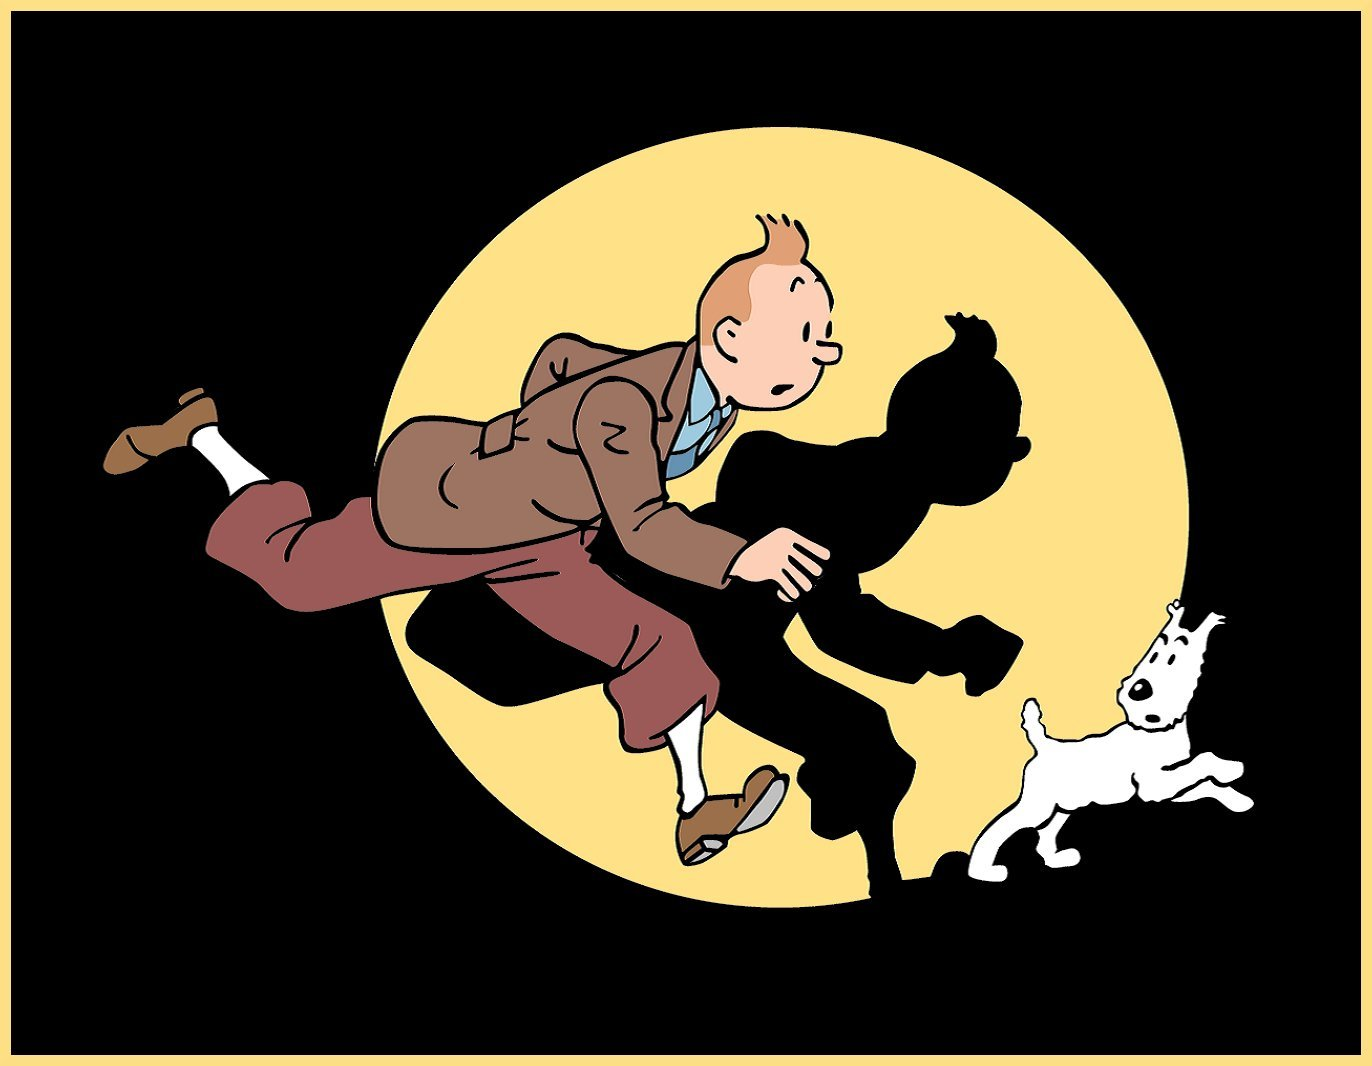 tintin images tintin hd wallpaper and background photos